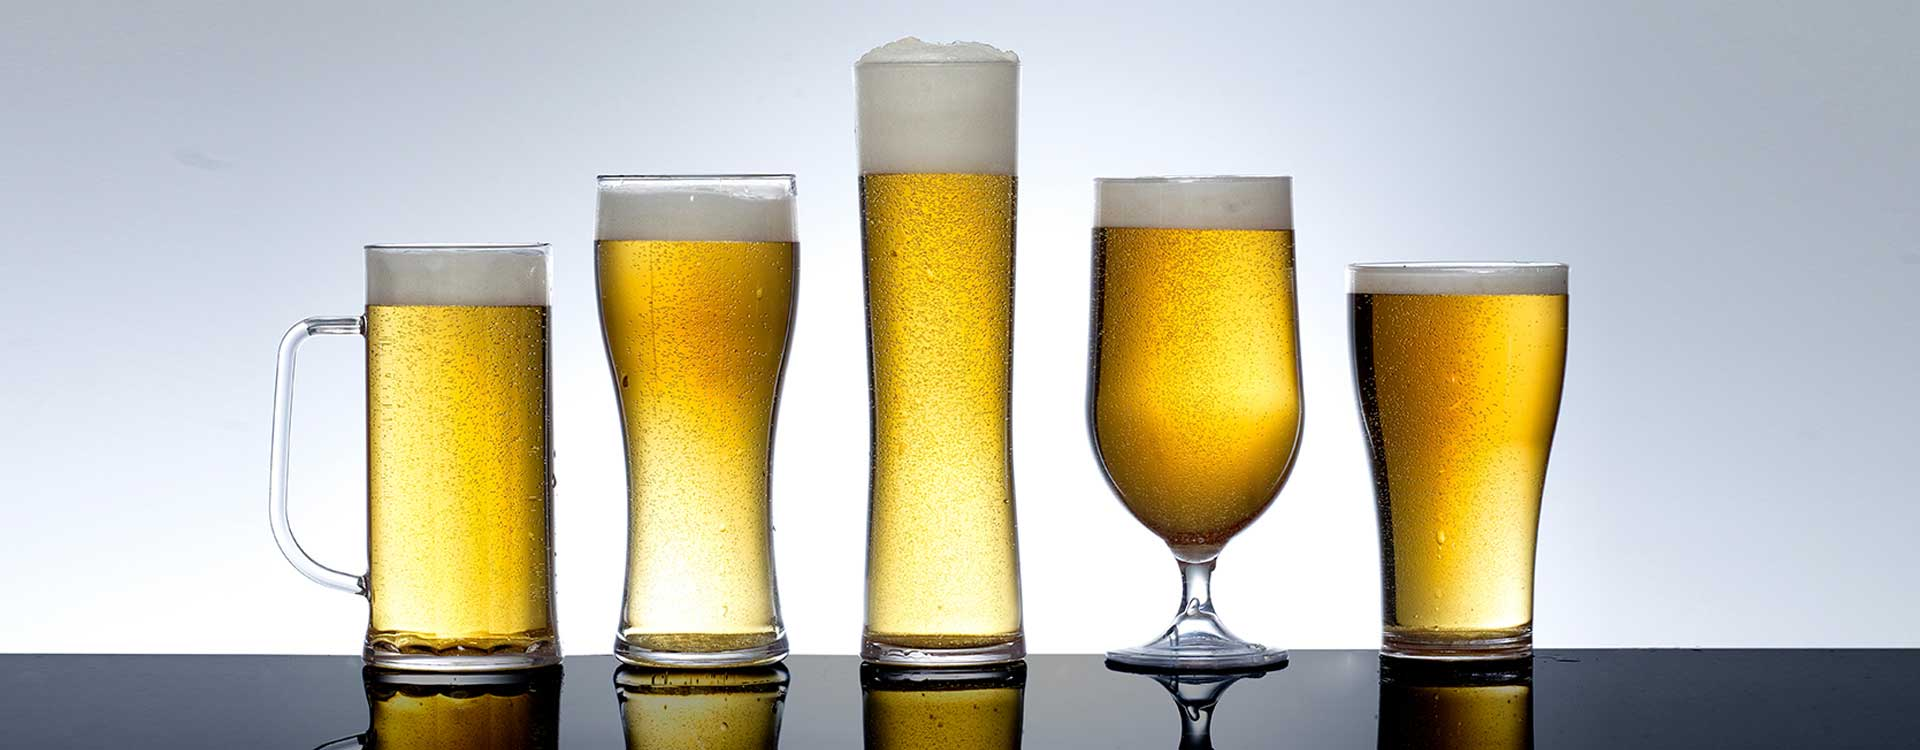 Plastic pint glass suppliers in Hampshire